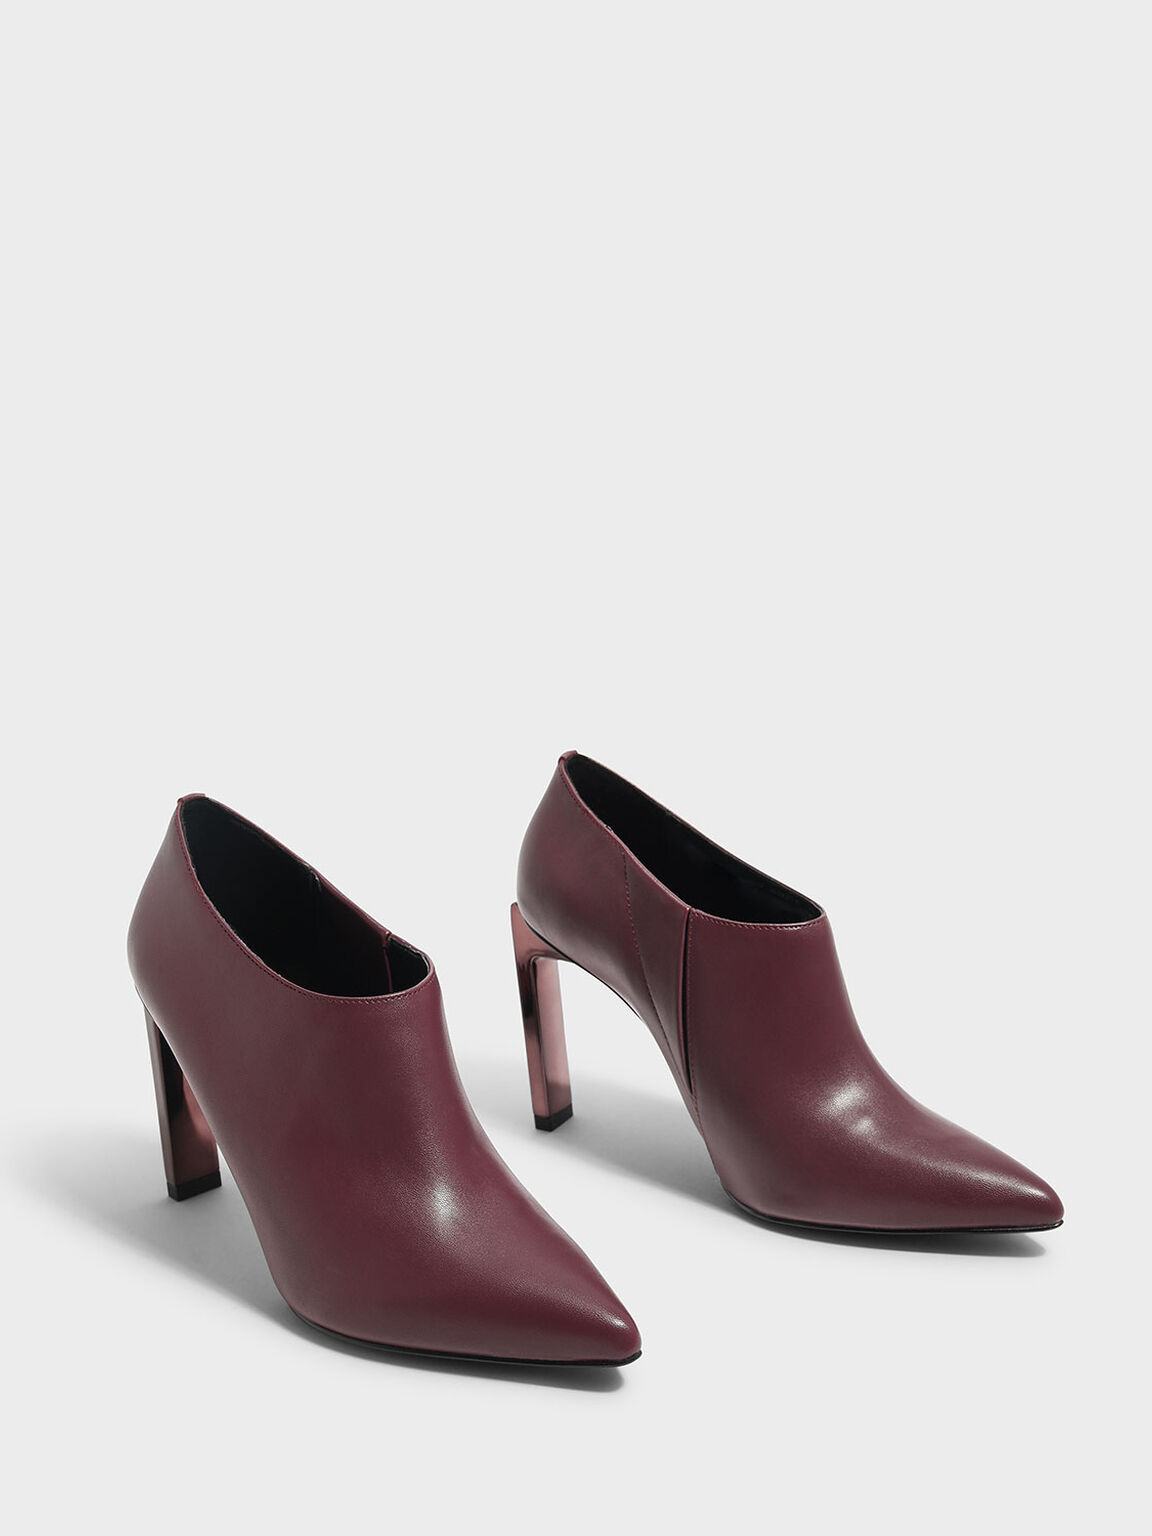 Blade Heel Booties, Burgundy, hi-res